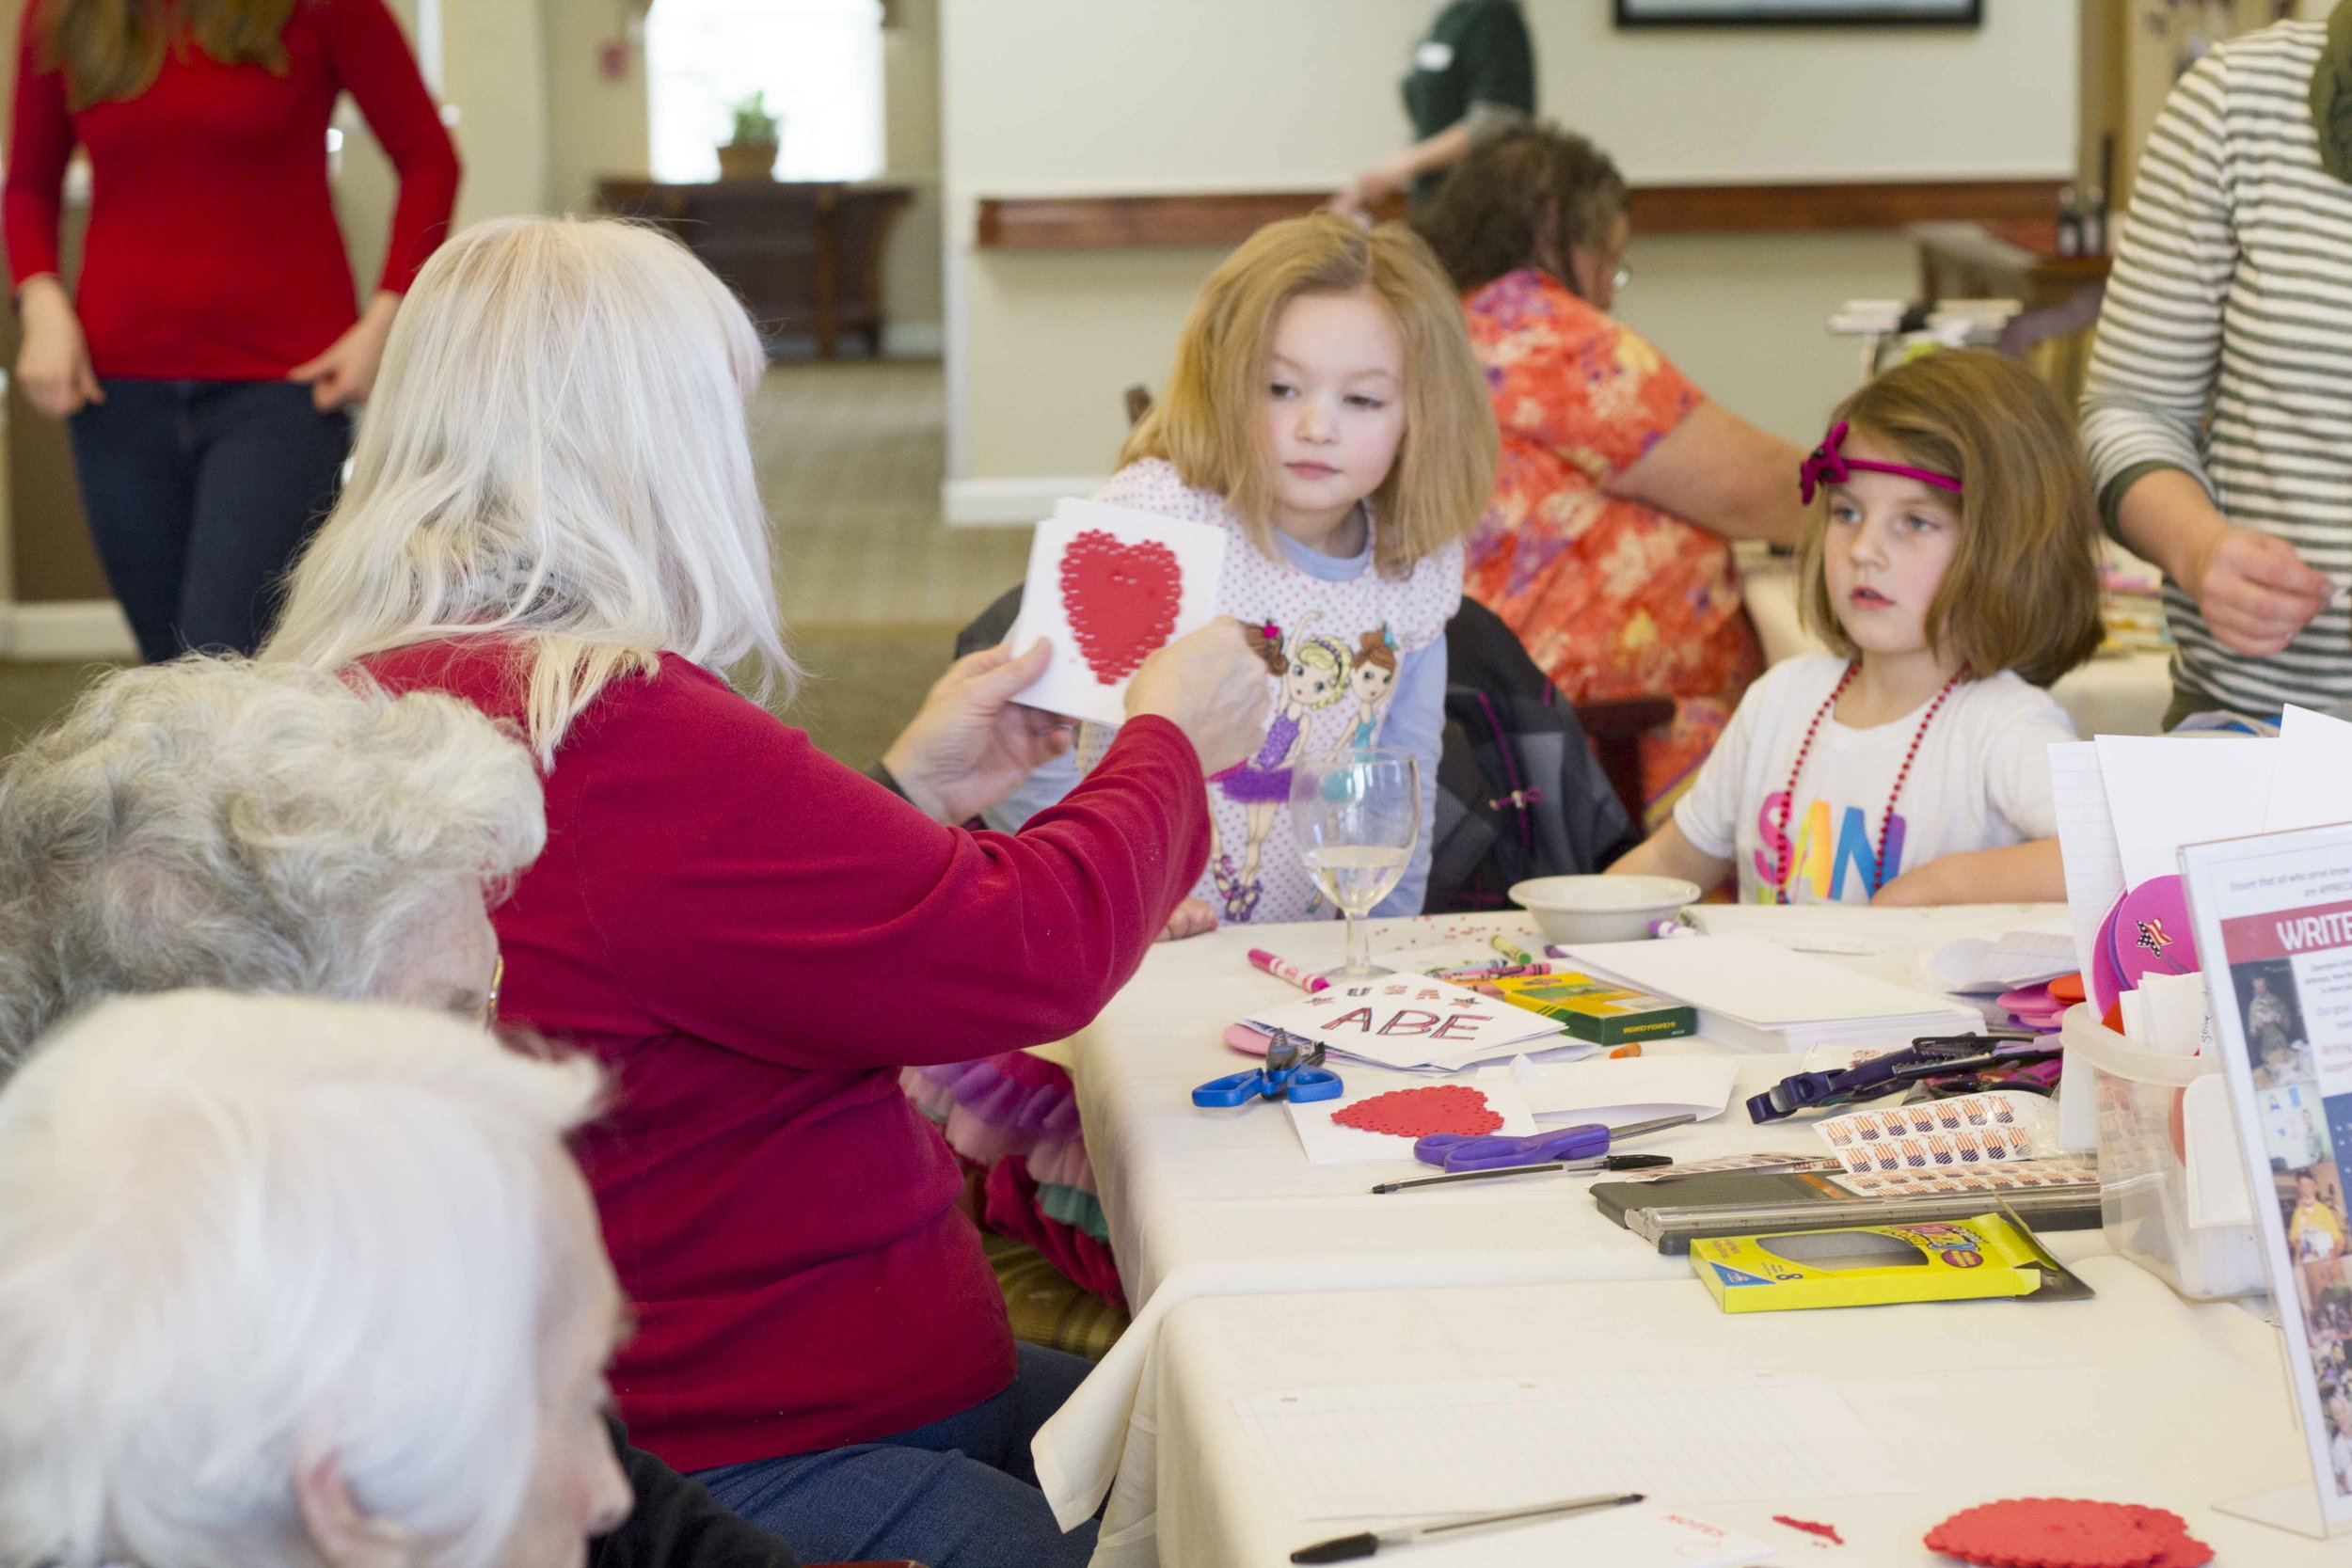 Jan 30 we made 37 Valentines to deployed troops and 62 friendship bracelets for humanitarians in Haiti with the residents at Lone Oak Retirement Community.